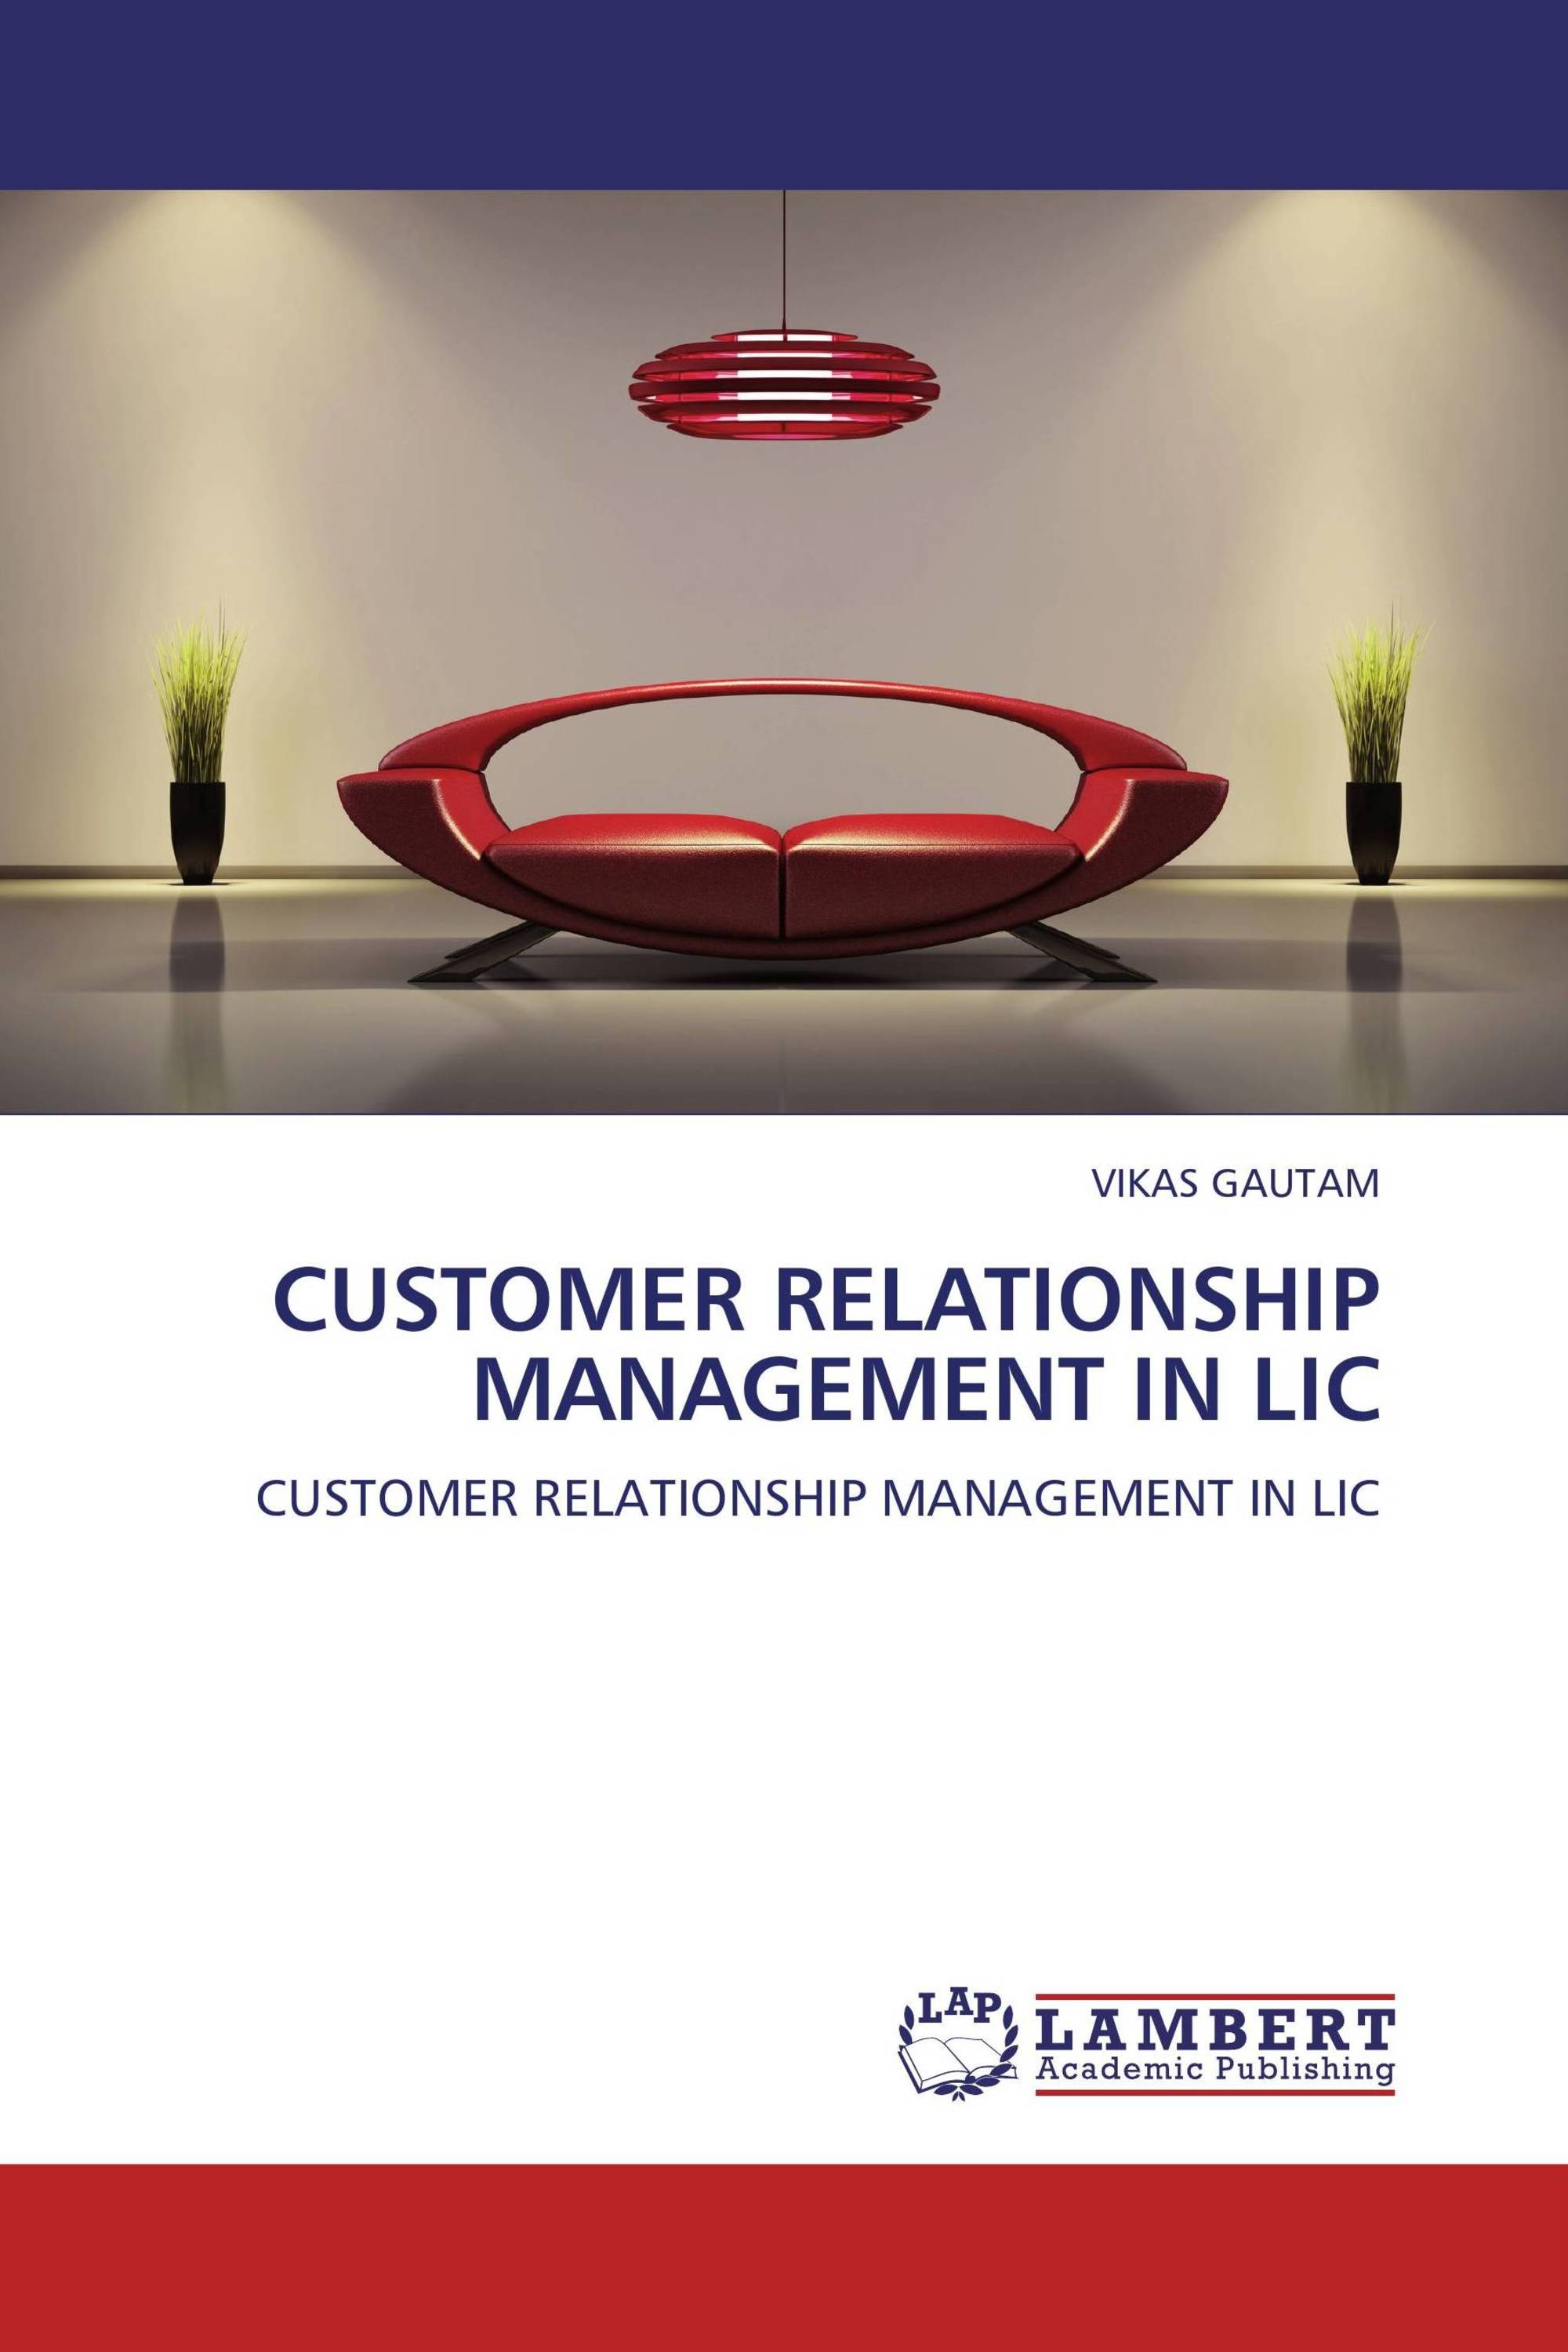 Customer relationship management thesis